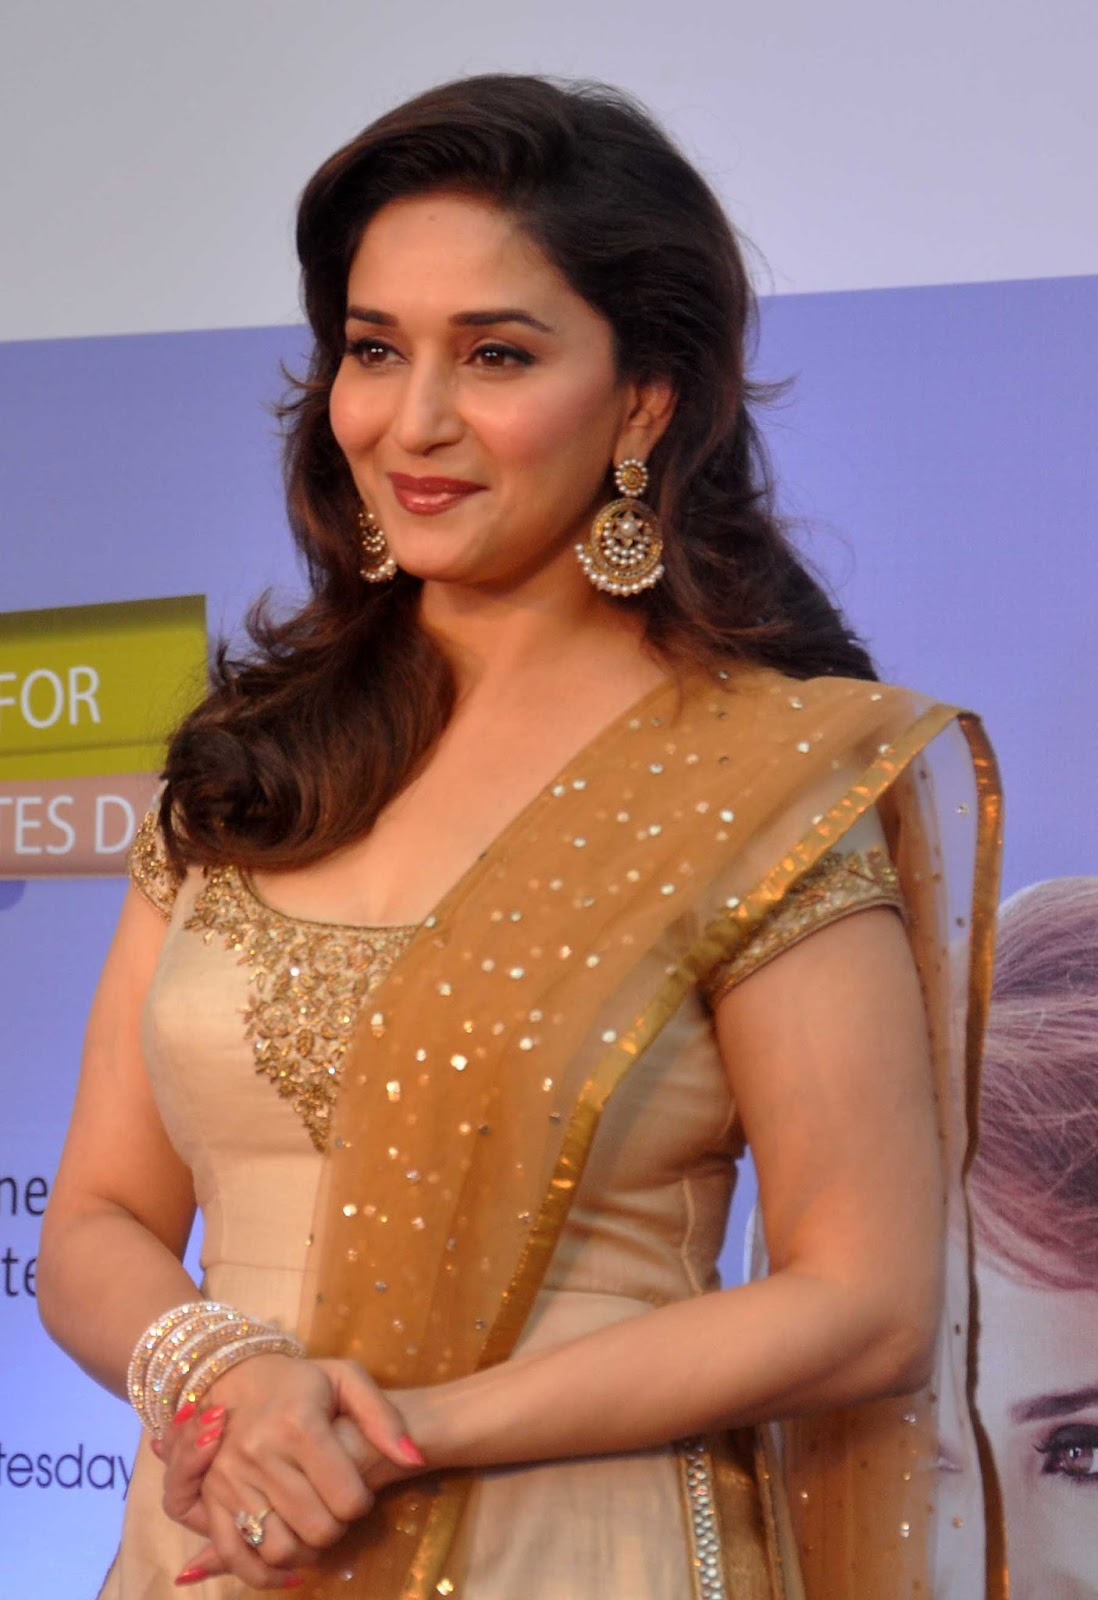 official madhuri dixit actress contact 91 701671 2 event booking enquiry celebrity manager book actor contact details live show contact number official